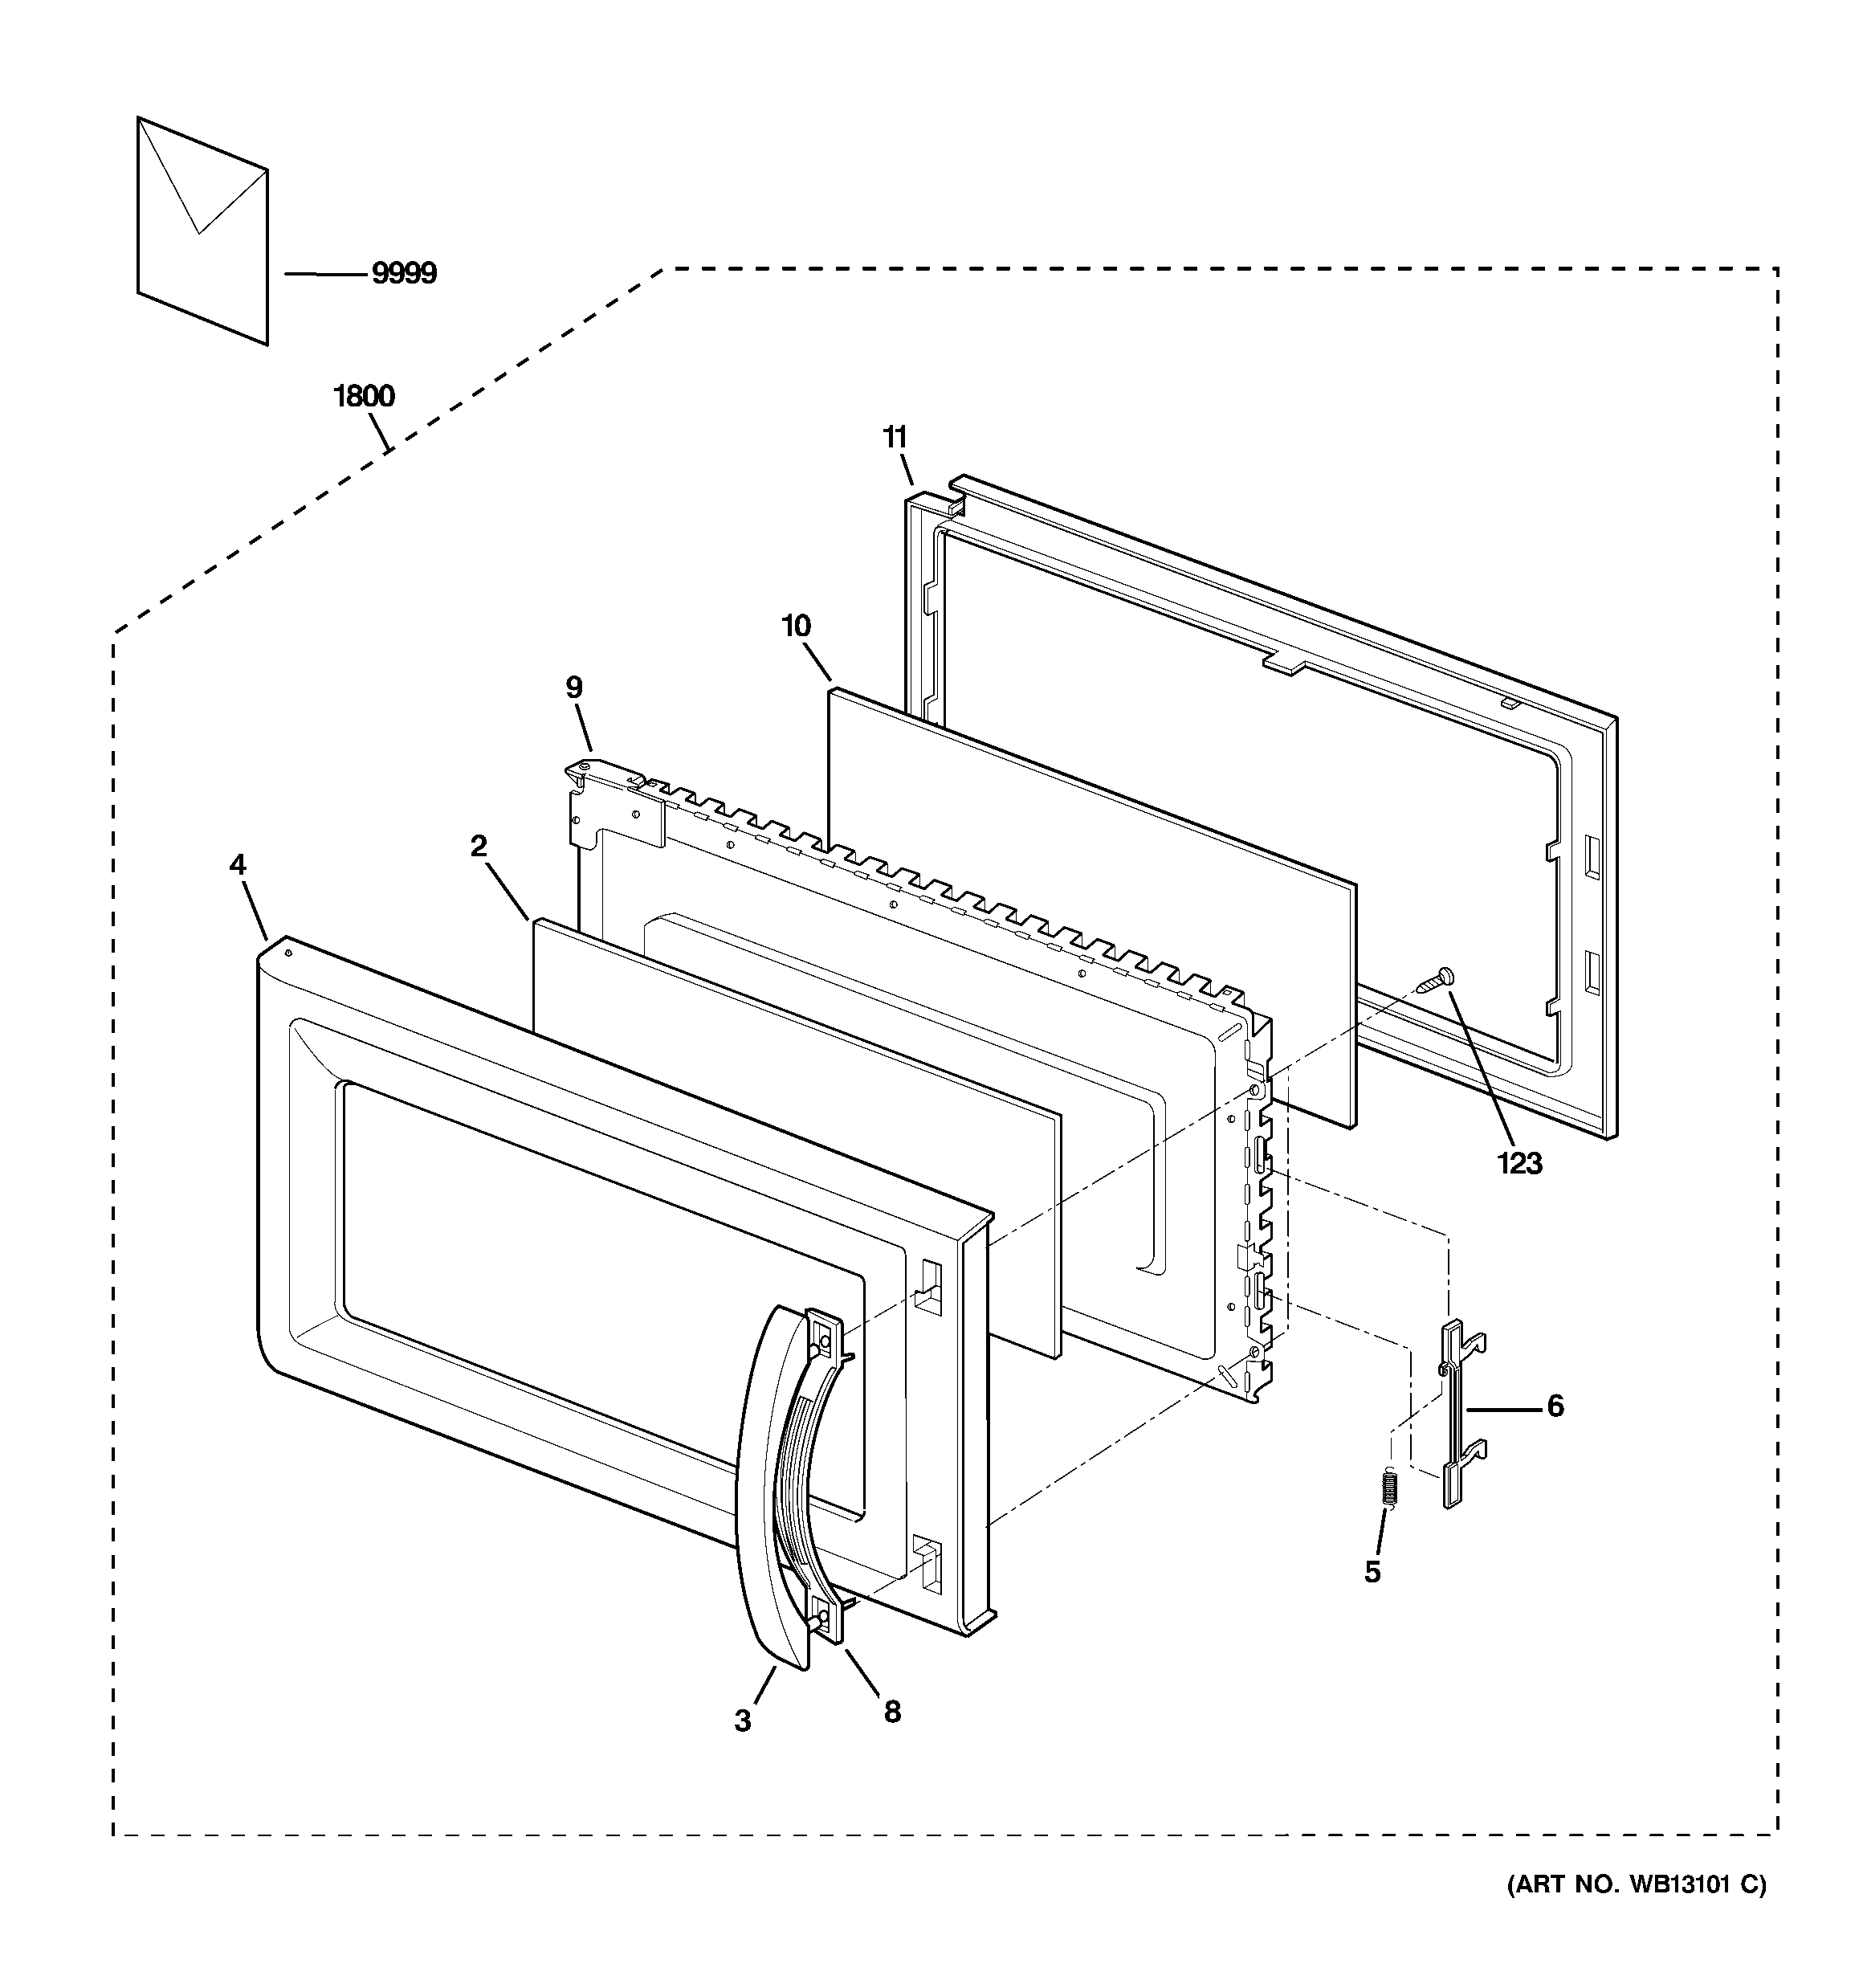 GE JVM1630CJ02 door parts diagram